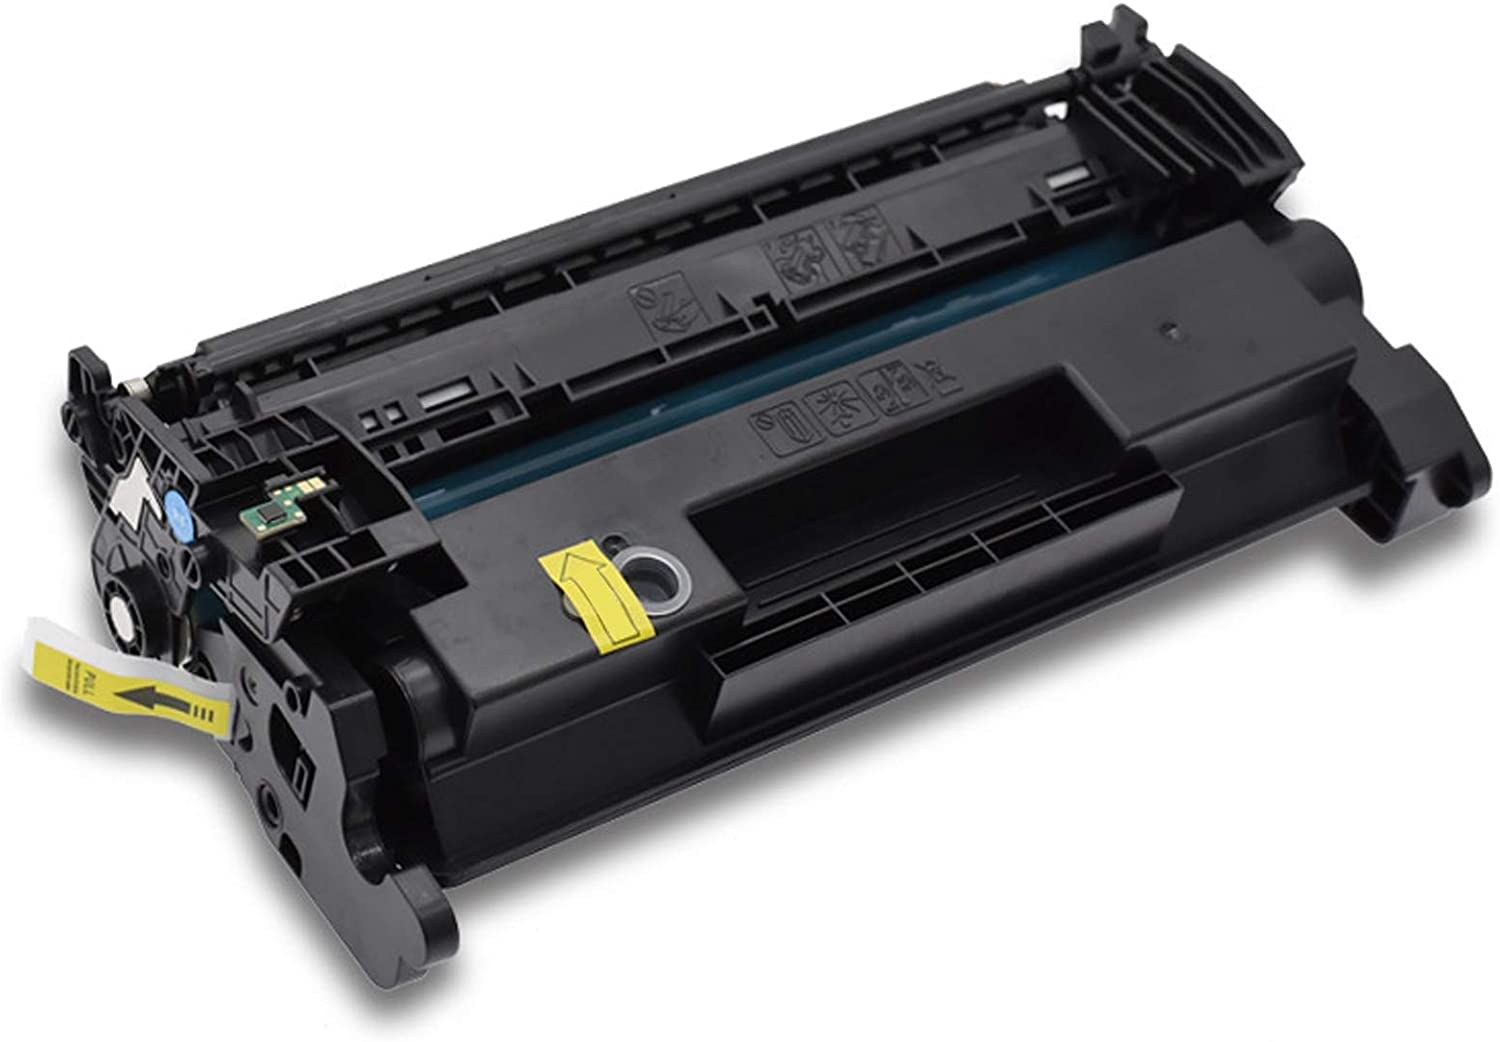 HYYH for Hp Cf258a Compatible Toner Cartridge Replacement for Hp Laserjet M404 M428 Printer Electronics Accessories Enterprise Factory with Chip Clear Print 1pcs